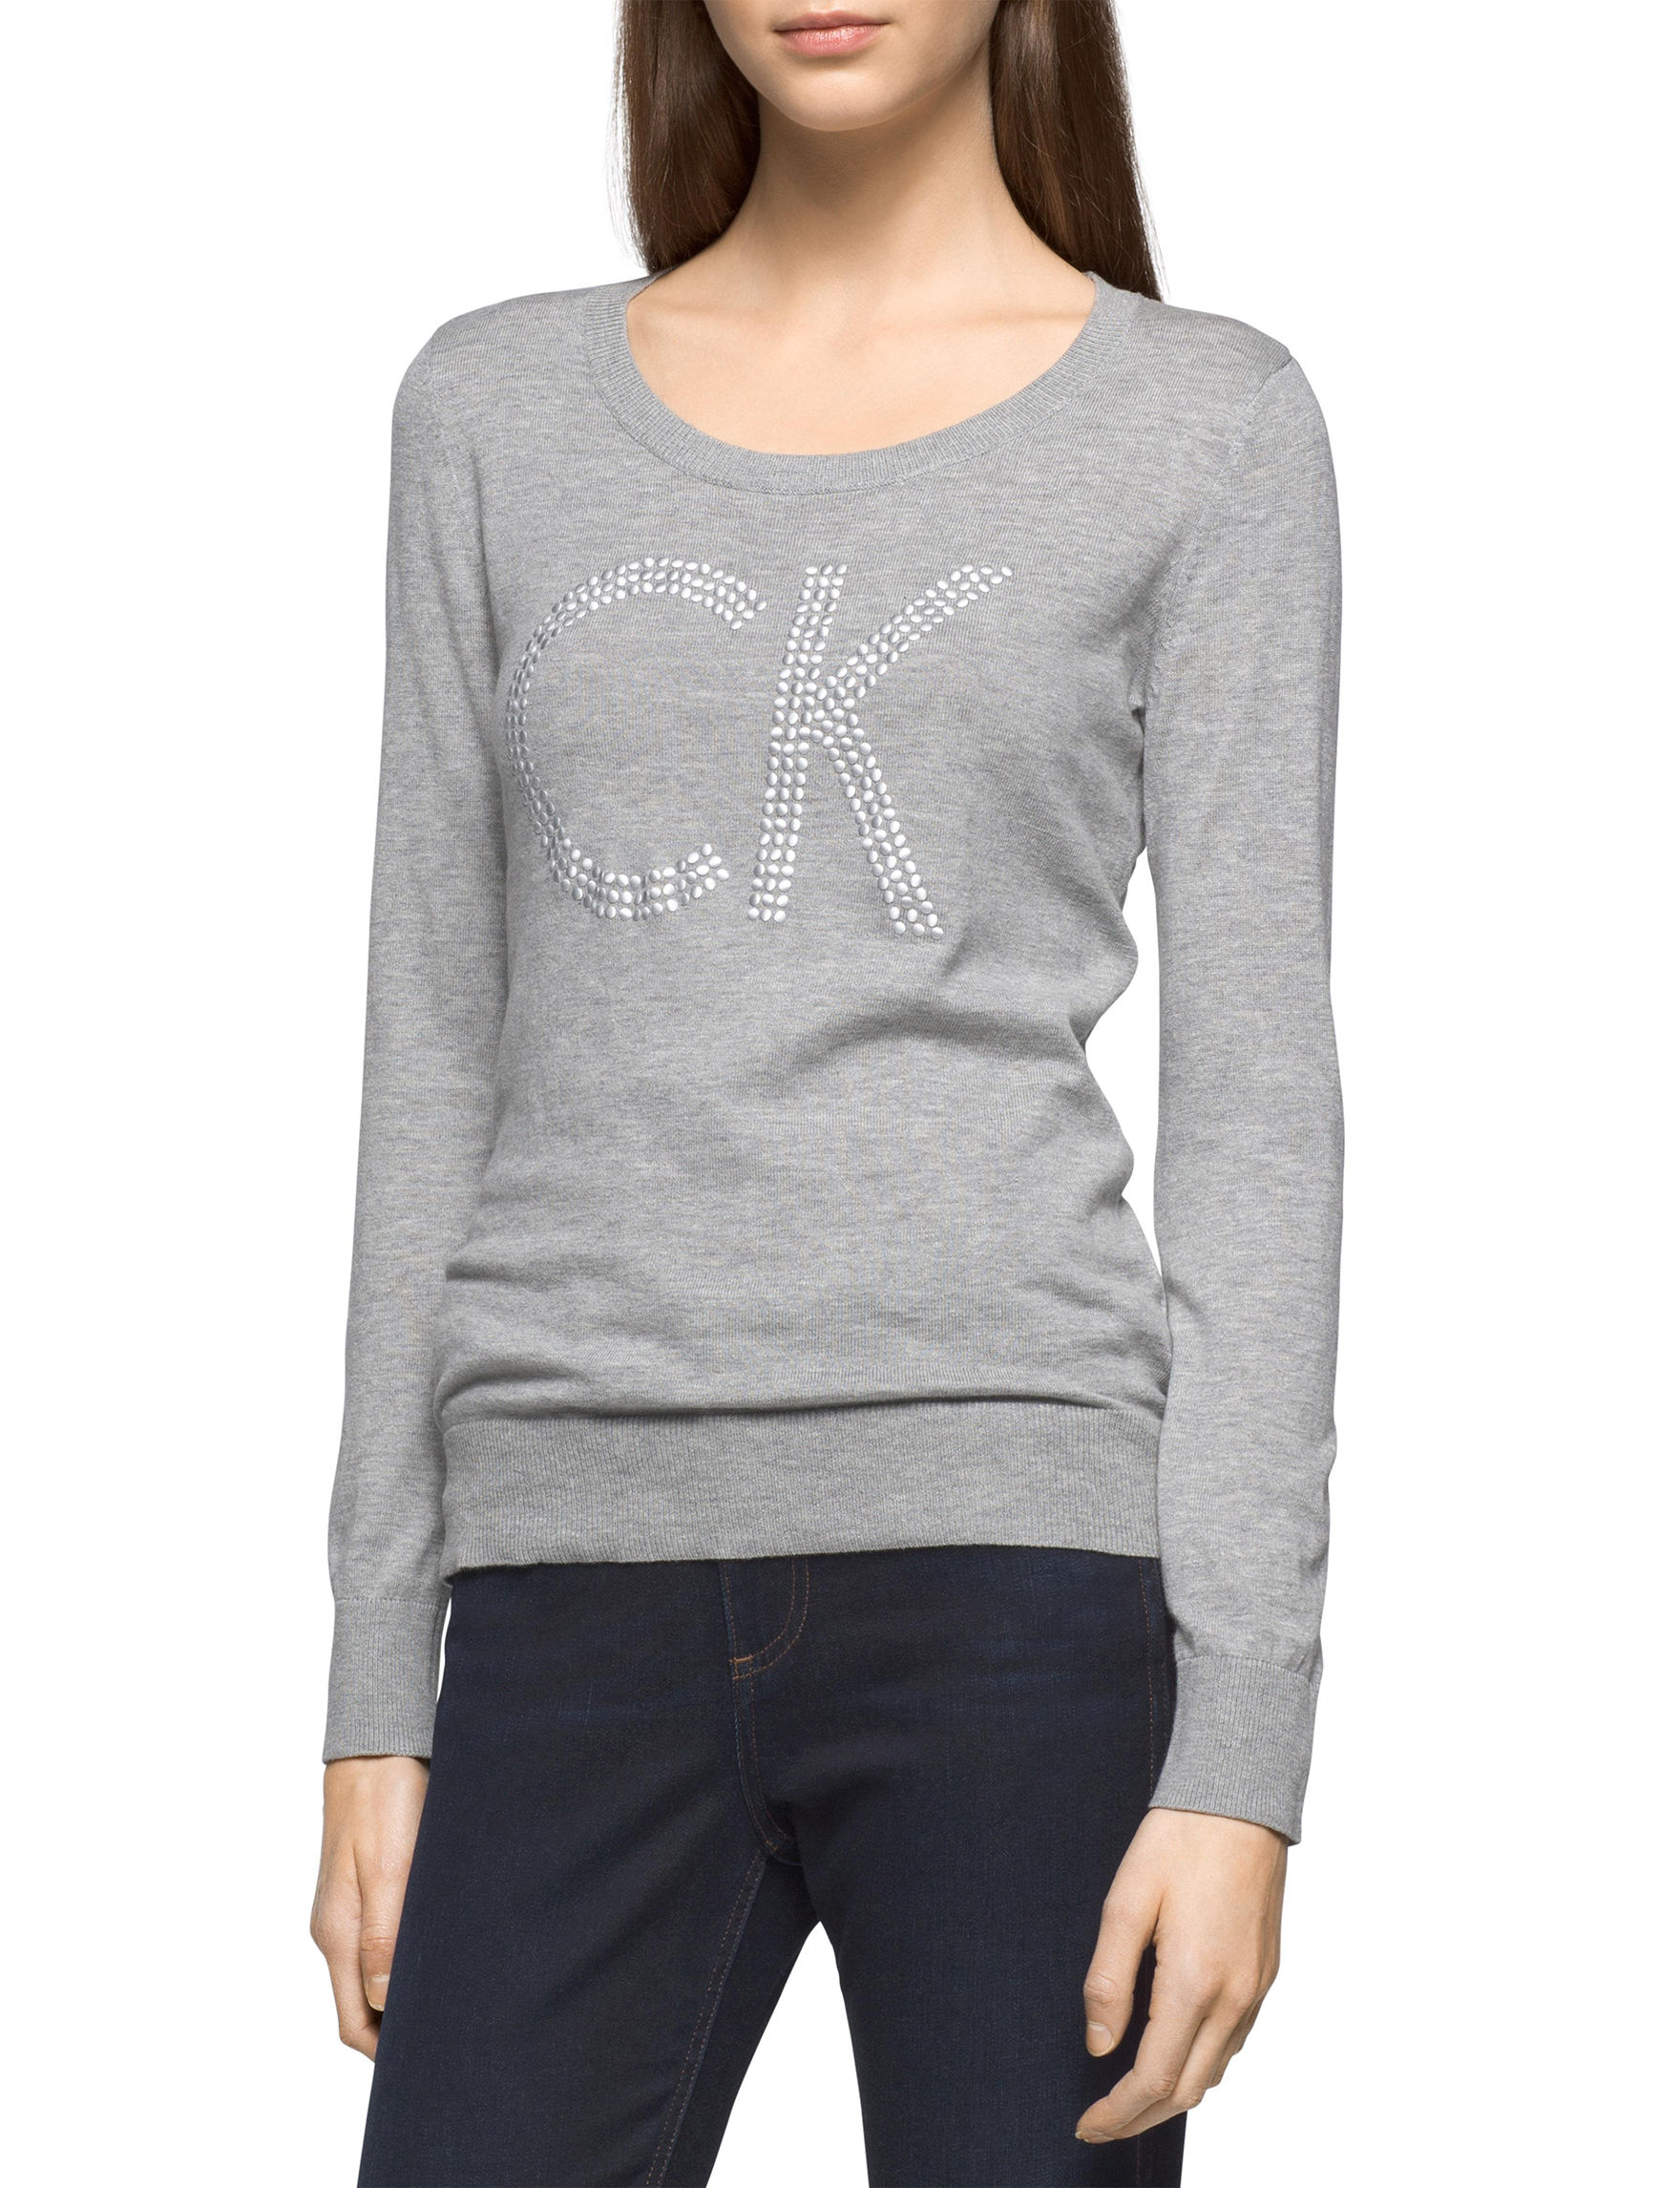 Calvin Klein Jeans Grey Pull-overs Sweaters